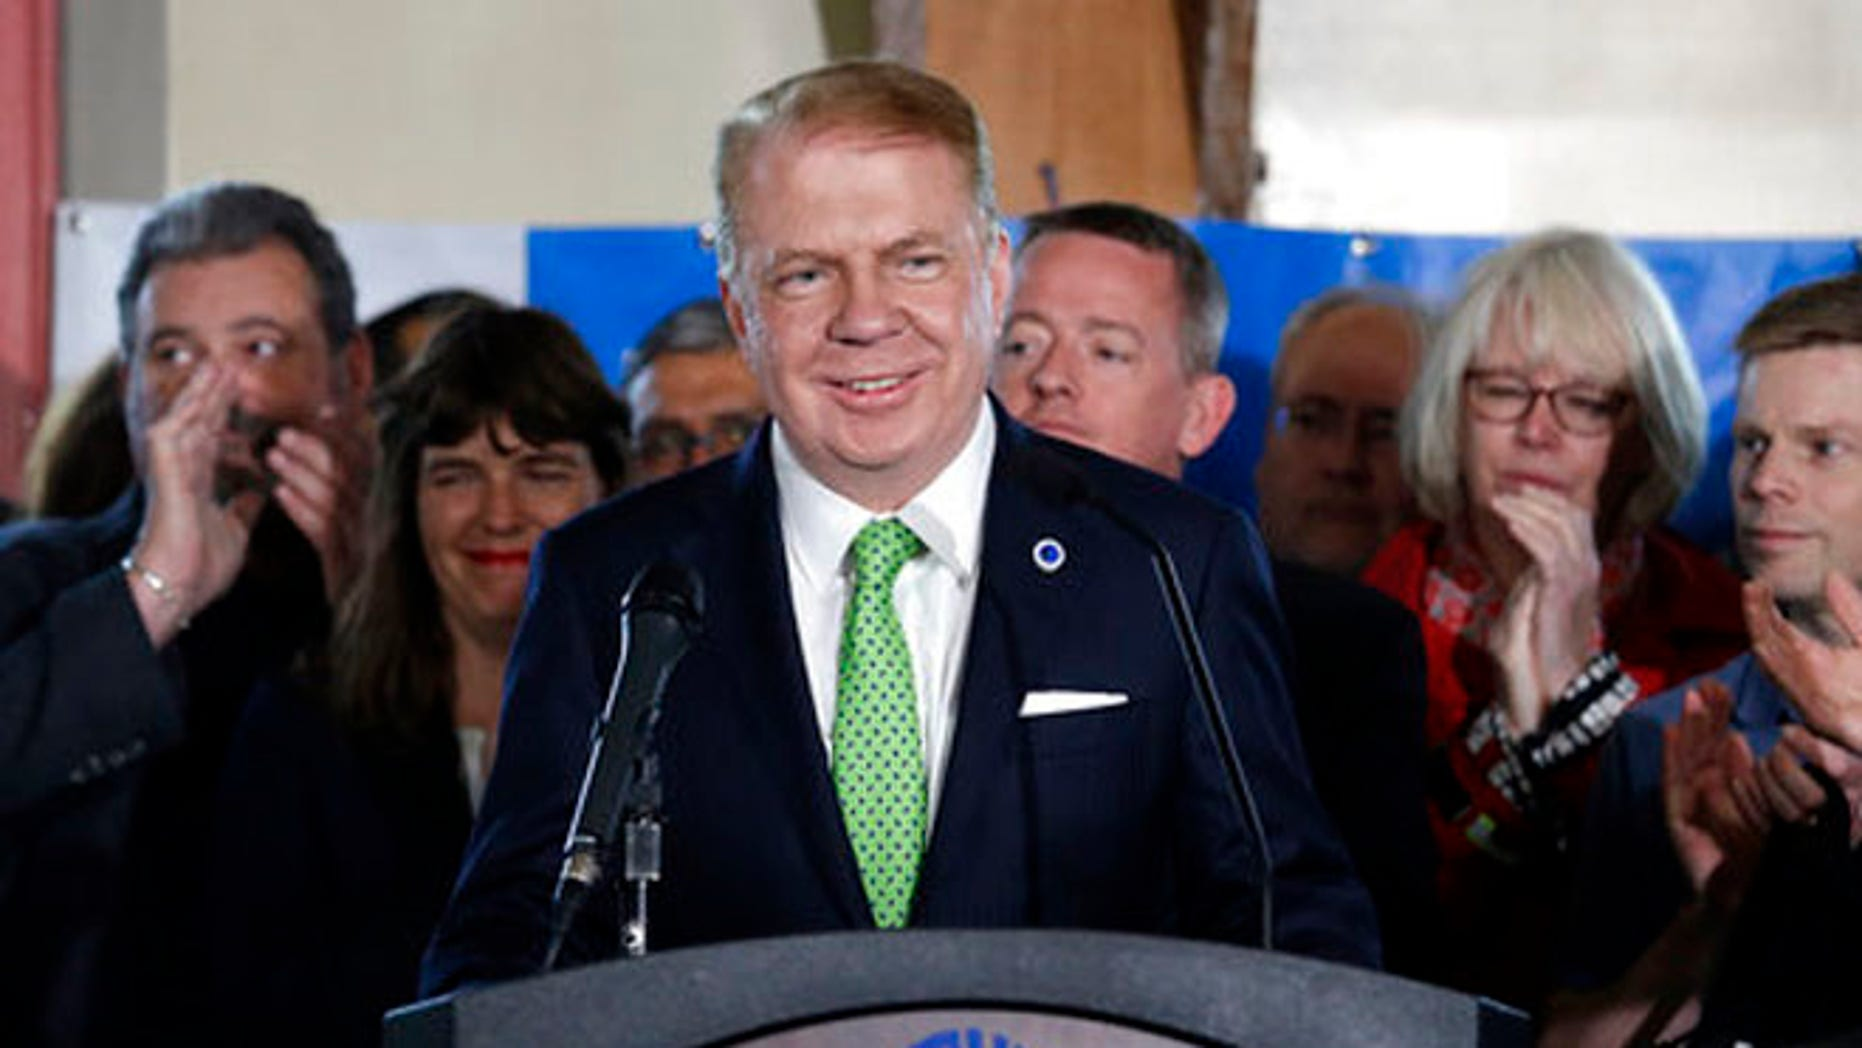 May 9, 2017: Seattle Mayor Ed Murray briefly smiles as supporters applauds his entrance before saying that he is dropping his re-election bid for a second term in Seattle.